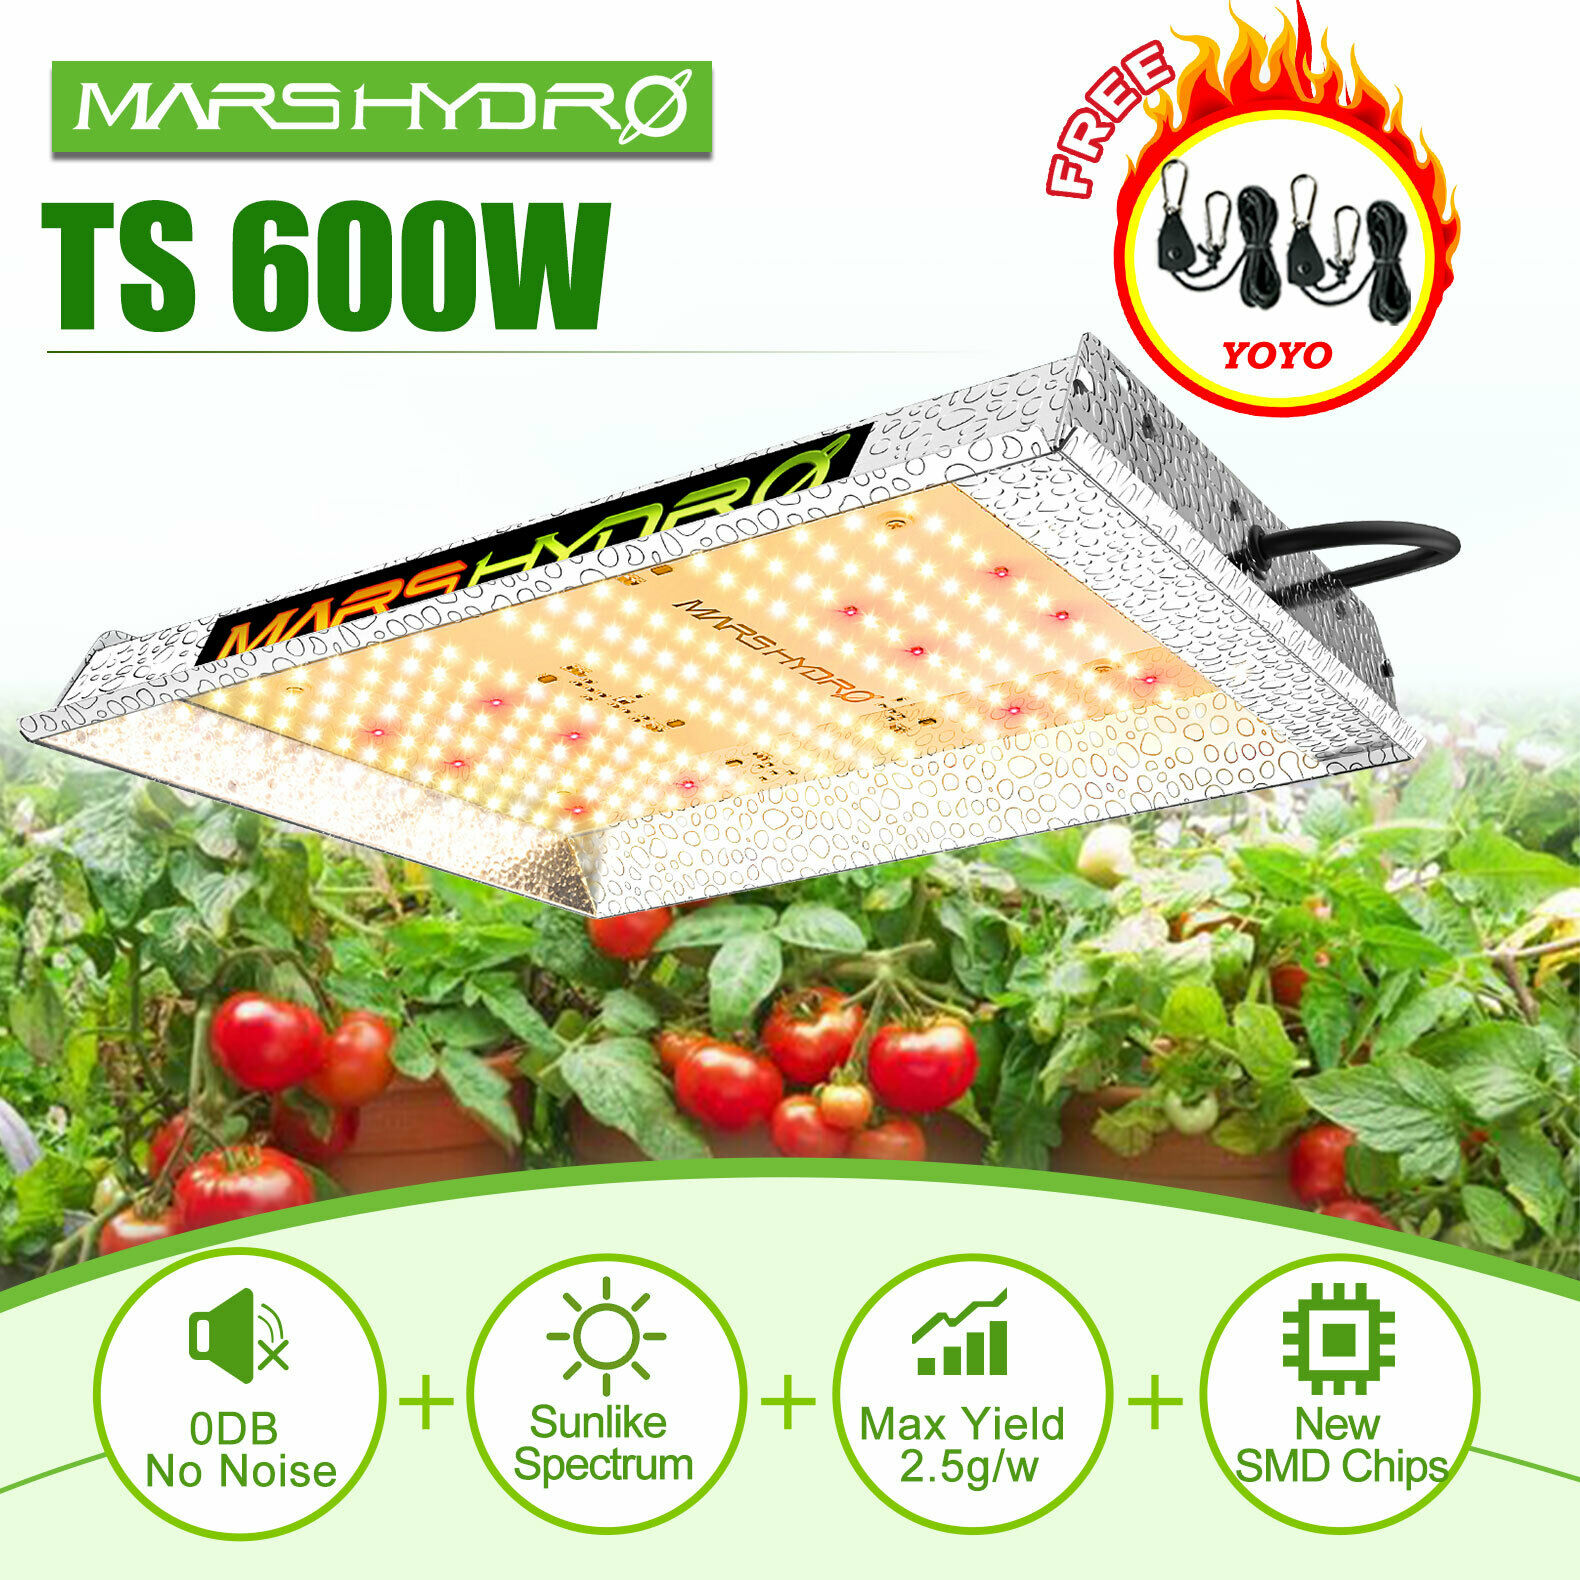 Mars Hydro TS 600W LED Grow Light Sunlike Full Spectrum Indoor Hydroponic Plants